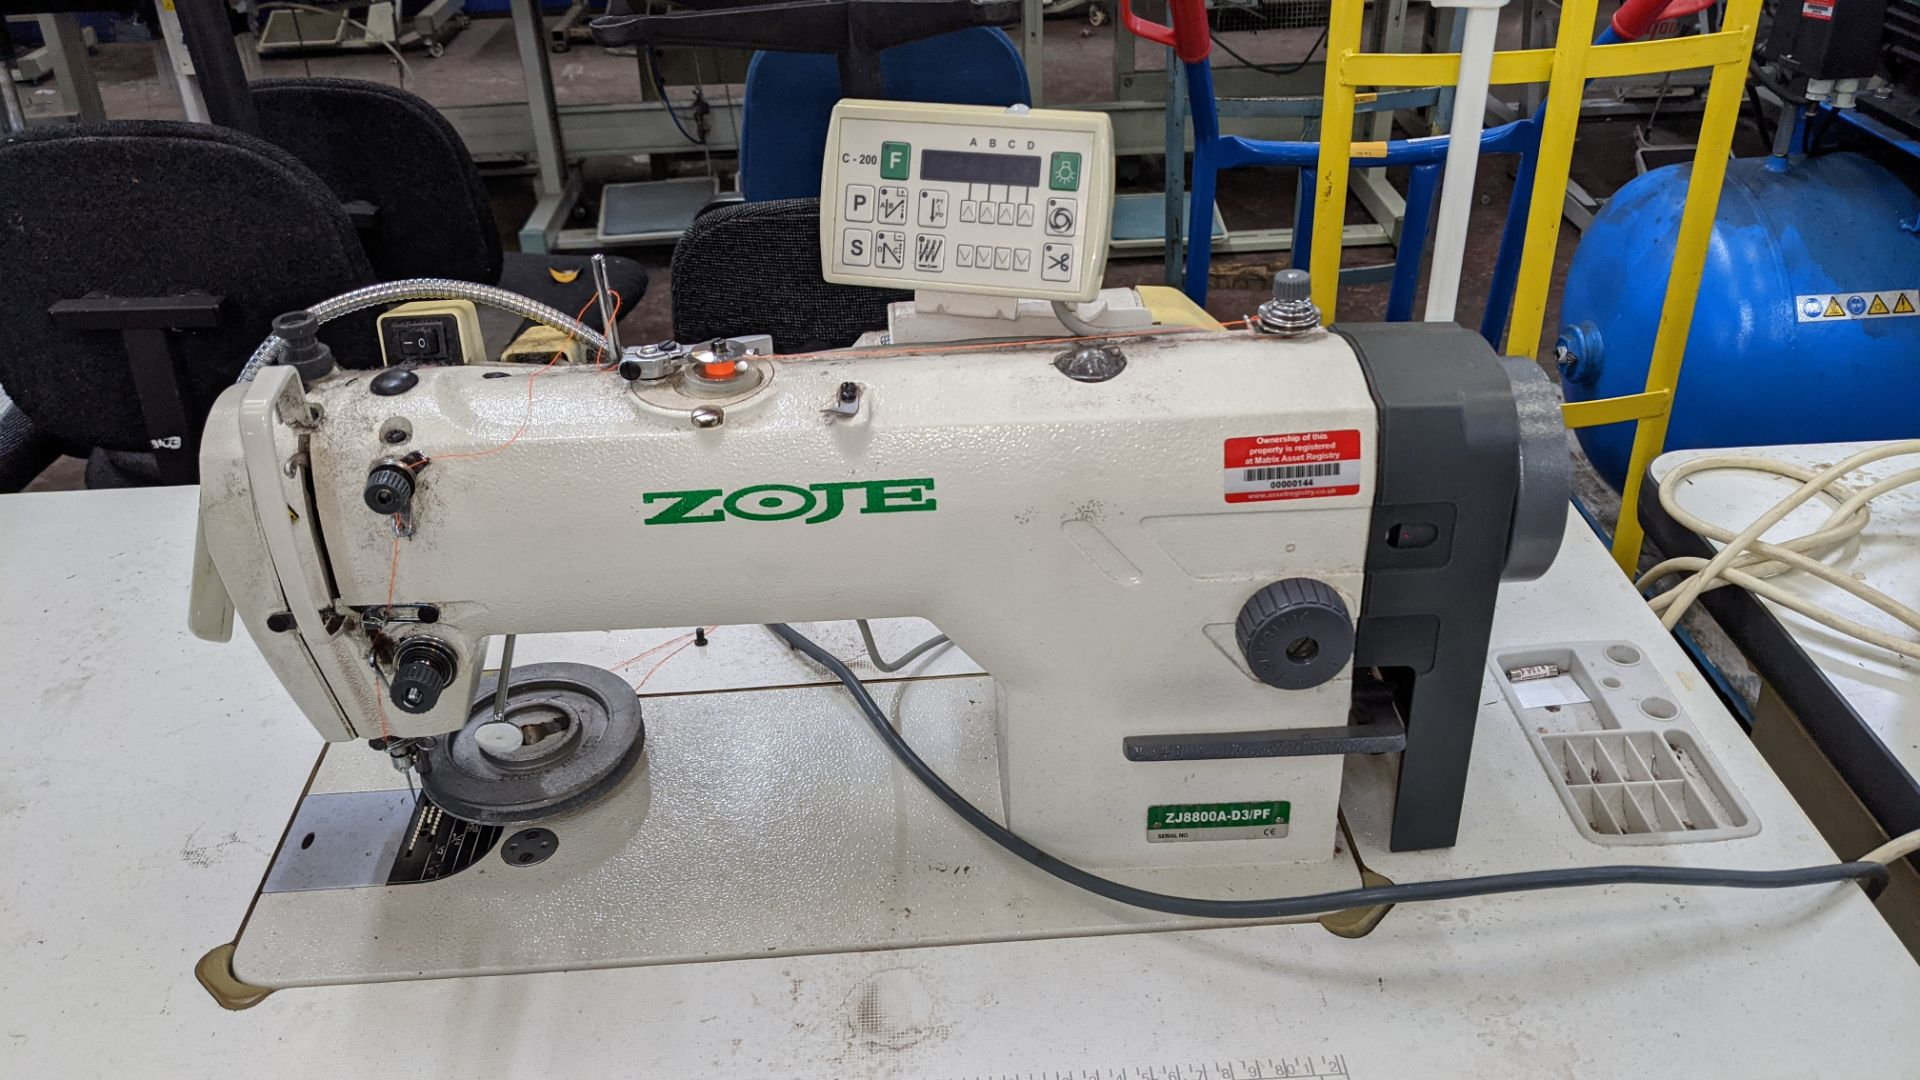 Zoje model ZJ8800A-D3B/PF sewing machine with C-200 controller - Image 6 of 16